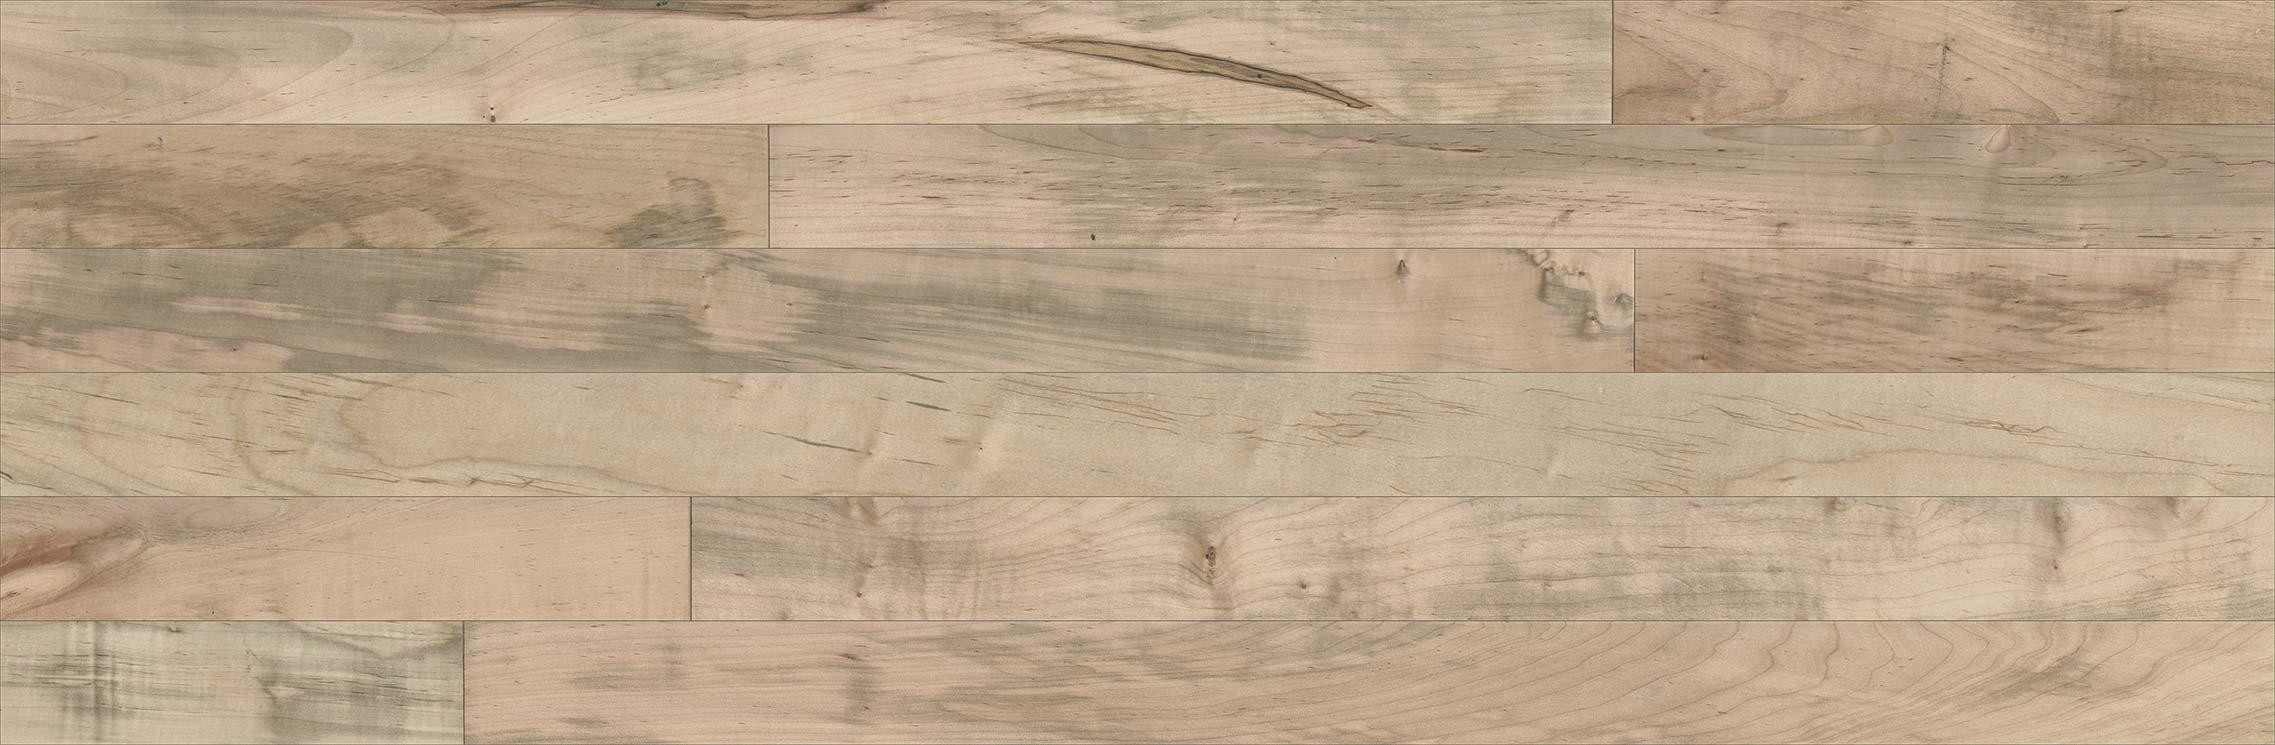 3 4 inch maple hardwood flooring of kingsmill natural maple 3 wide 3 4 solid hardwood flooring for natural maple m unat3 3 x 55 horizontal